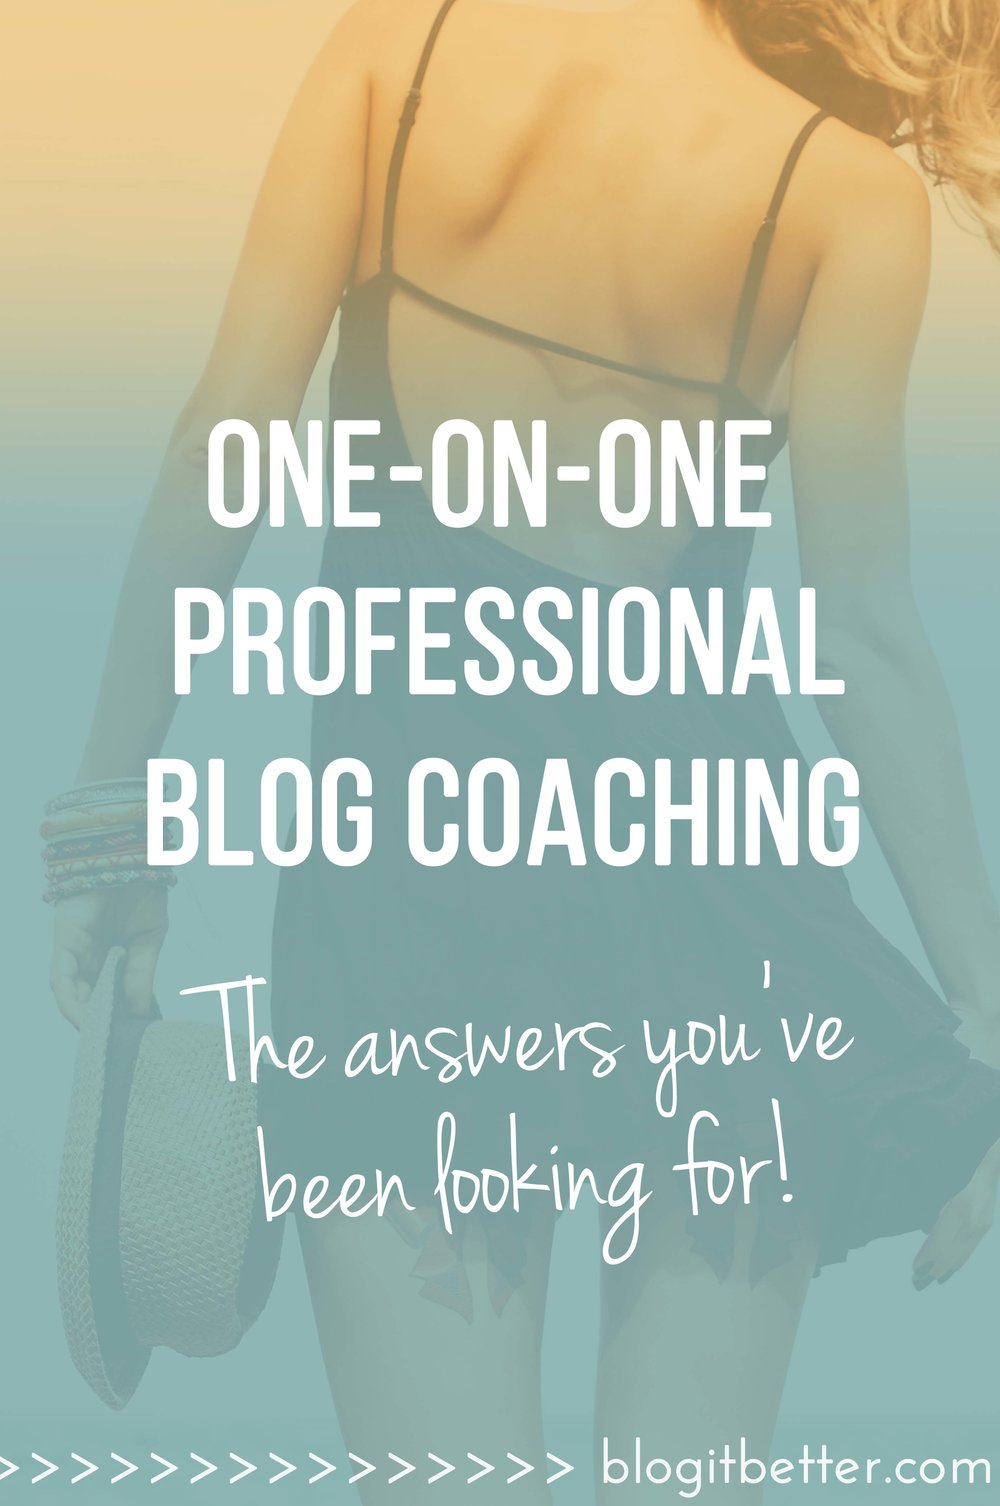 How would you like to gain valuable insights that can propel your blog from average to awesome in half the time?